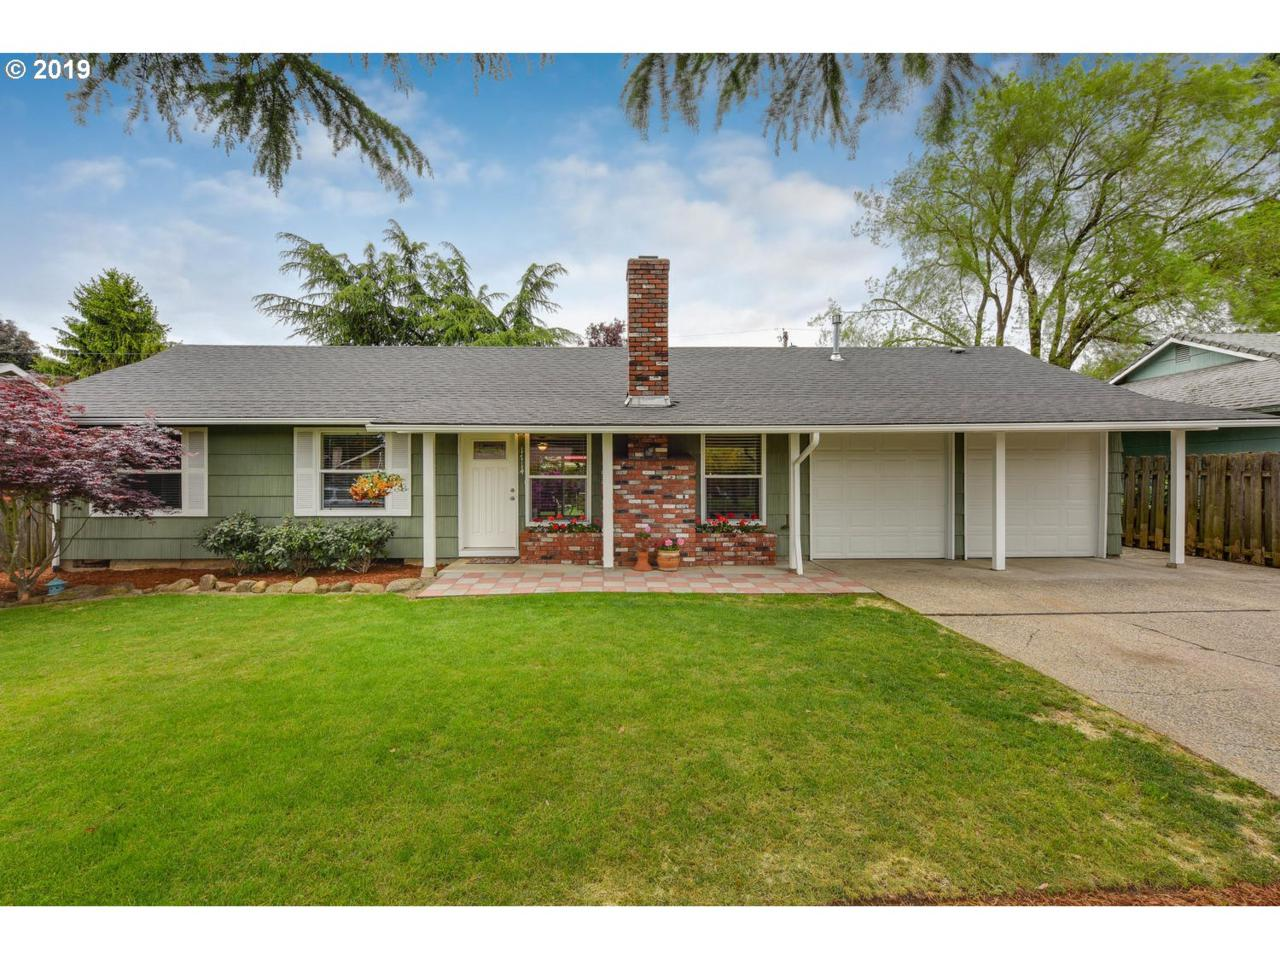 1714 159TH Ave - Photo 1